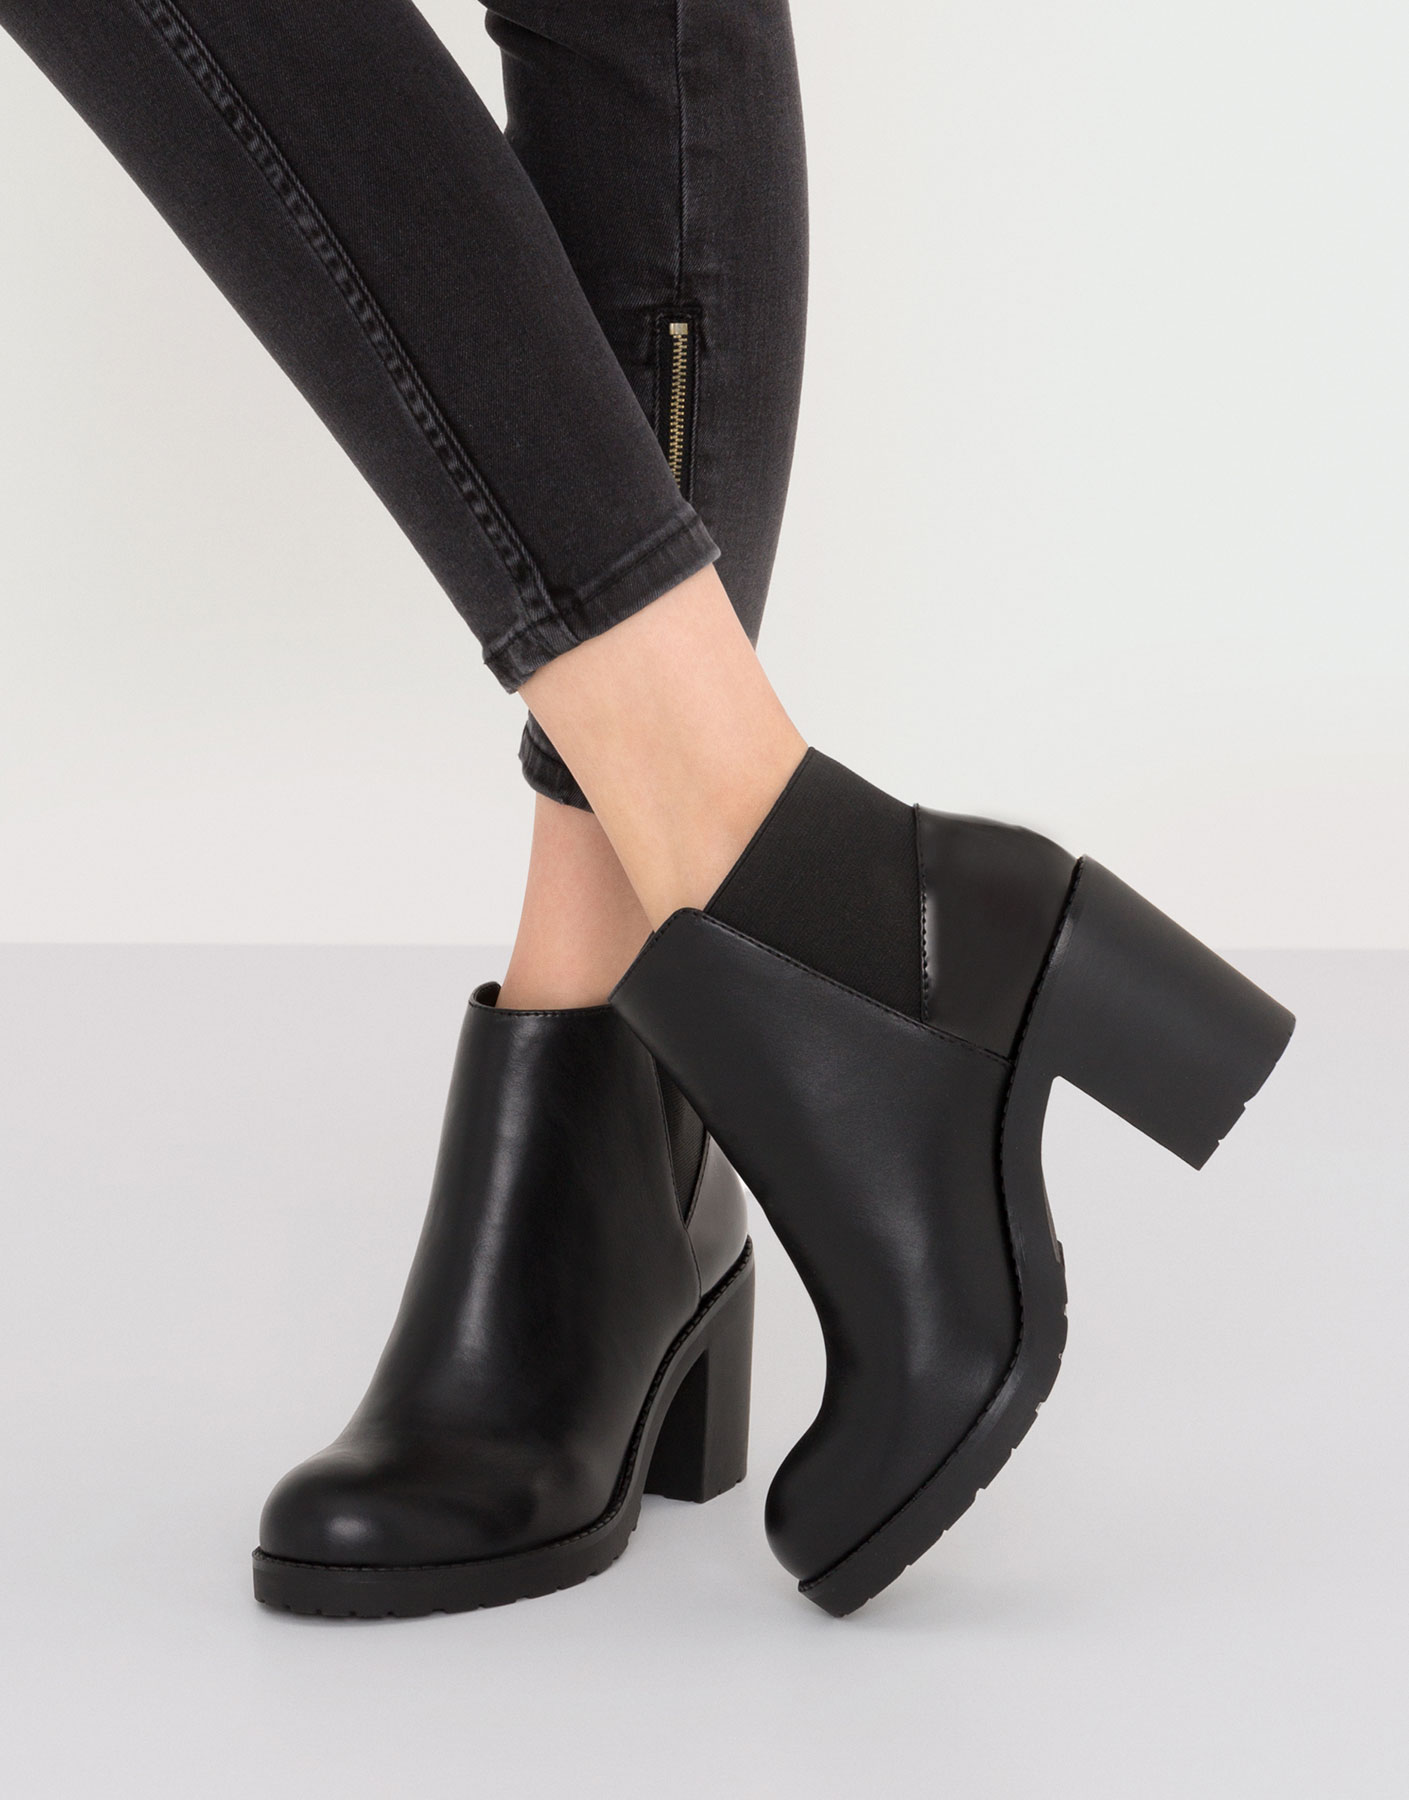 Black contrast high heel ankle boots